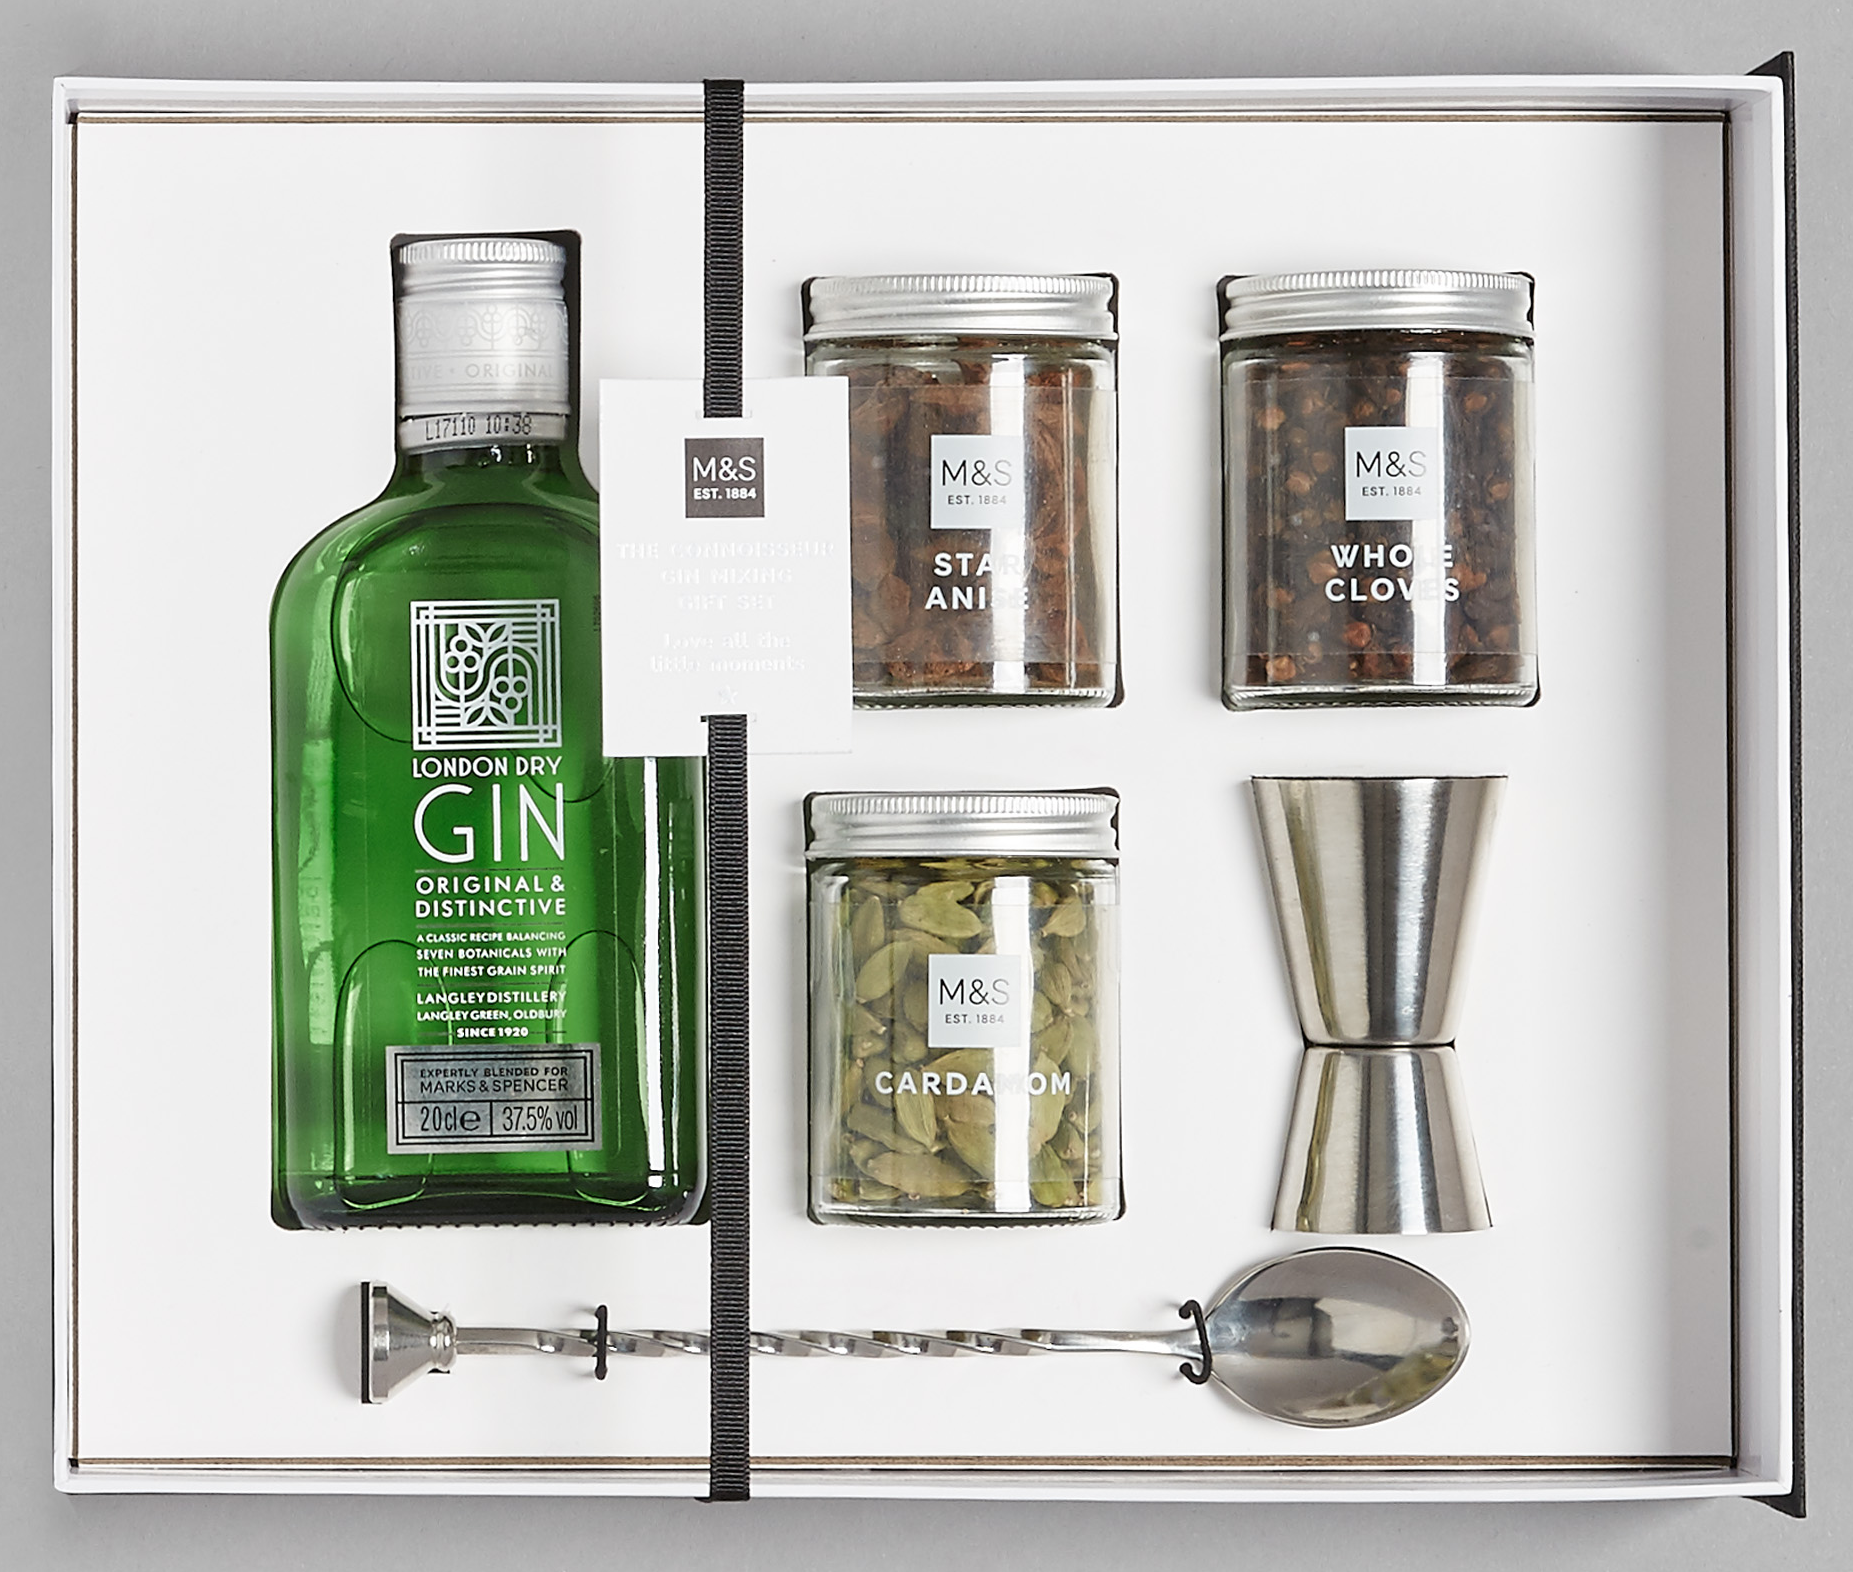 Connoisseur Gin Mixing Kit, £25, marks & Spencer